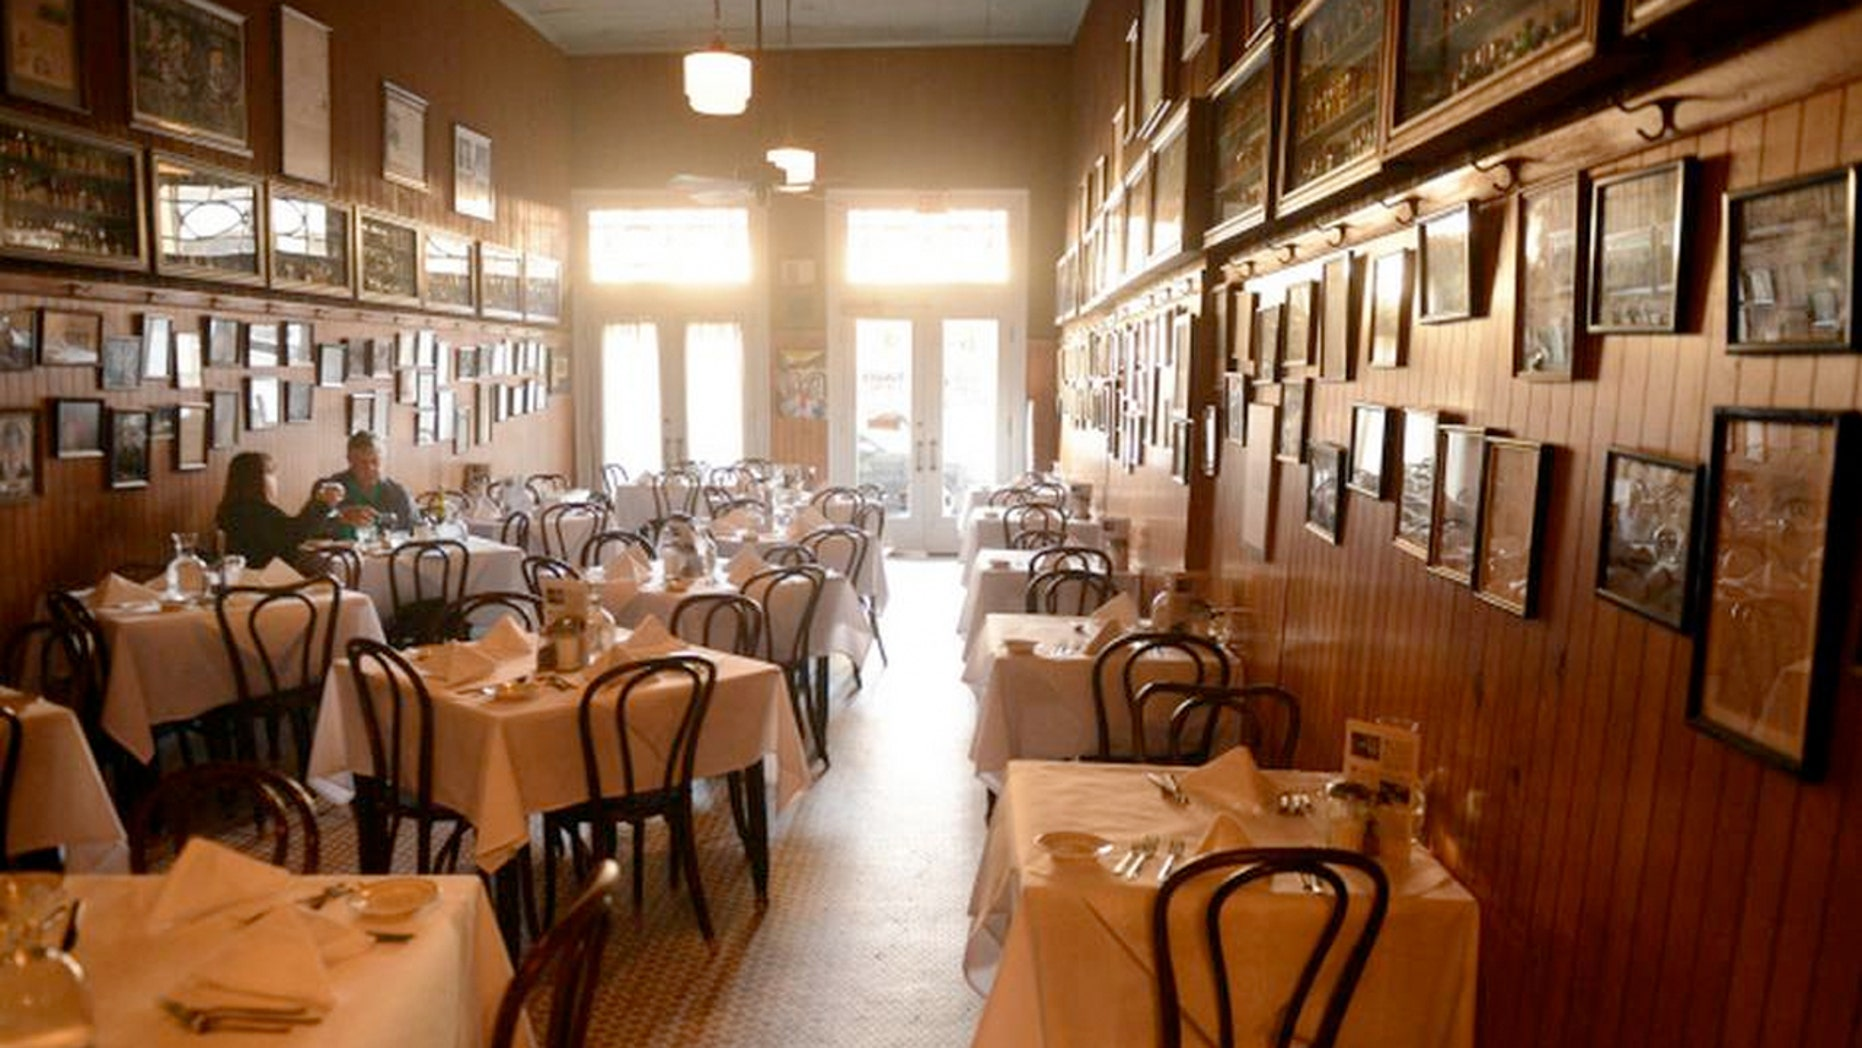 Diners at Tujague's, a culinary landmark in New Orleans' French Quarter, say they were visited by Julian Eltinge, a cross-dressing ghost.